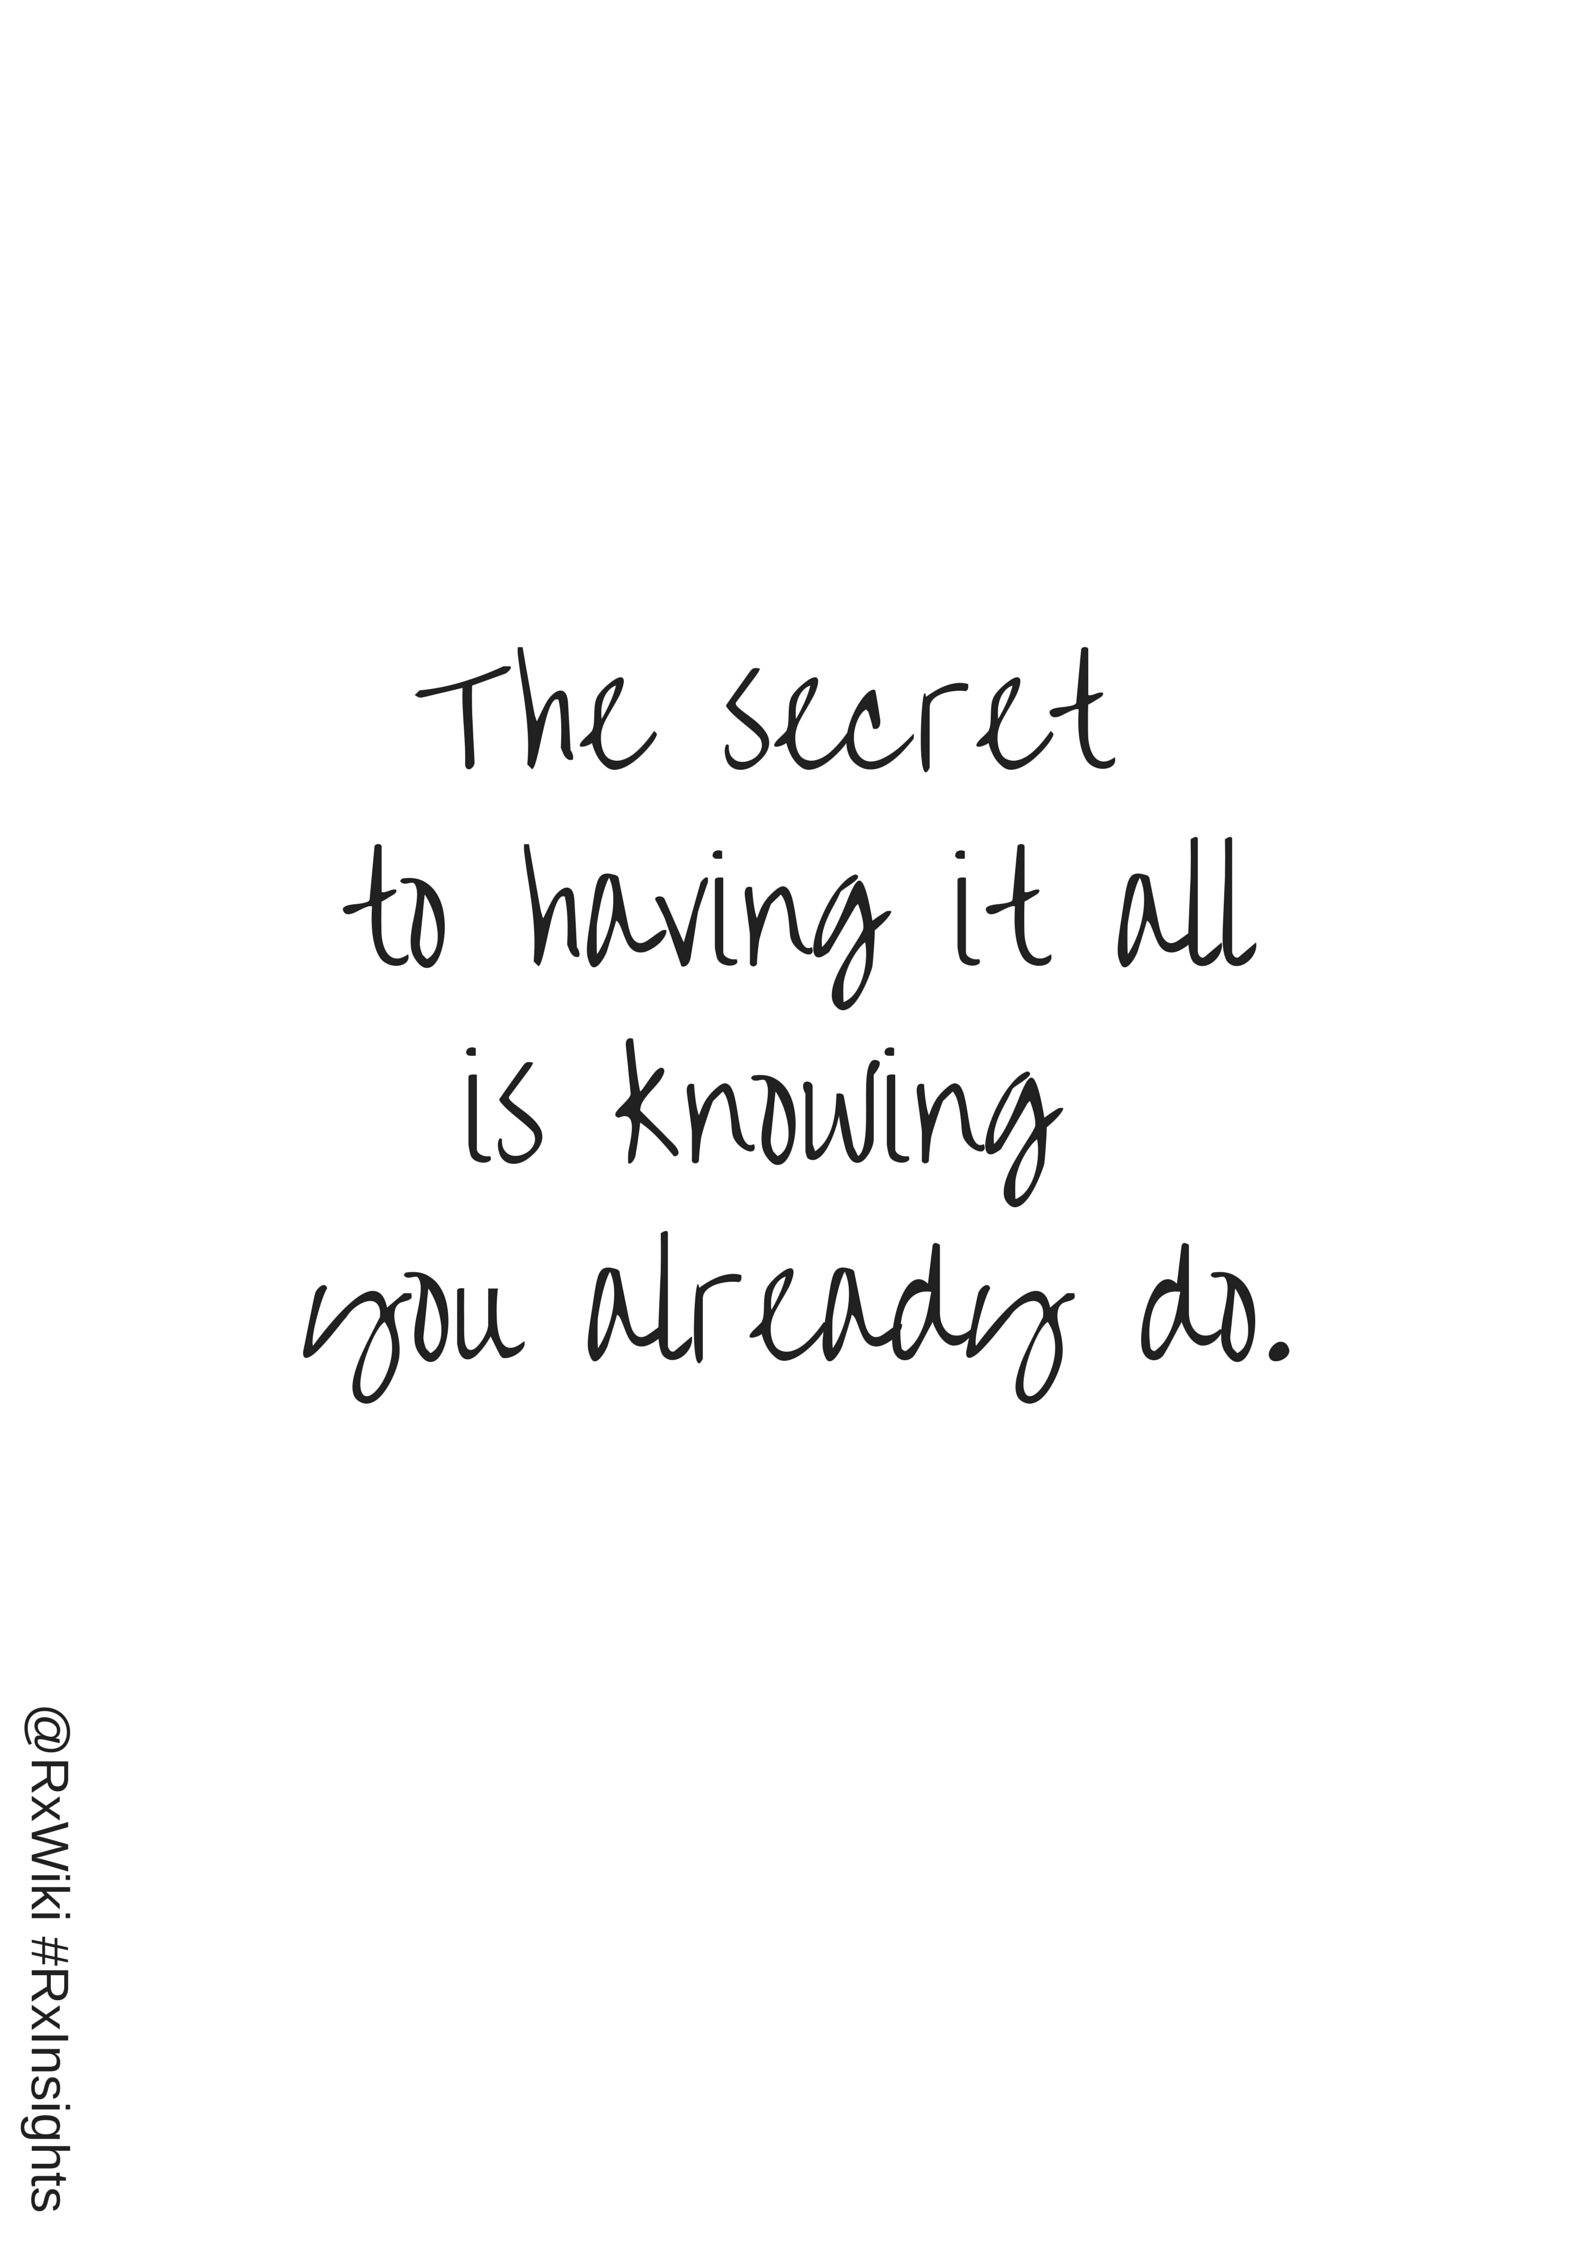 Love Family Quotes Simple The Secret To Having It All Is Knowing You Already Do #quote #secret